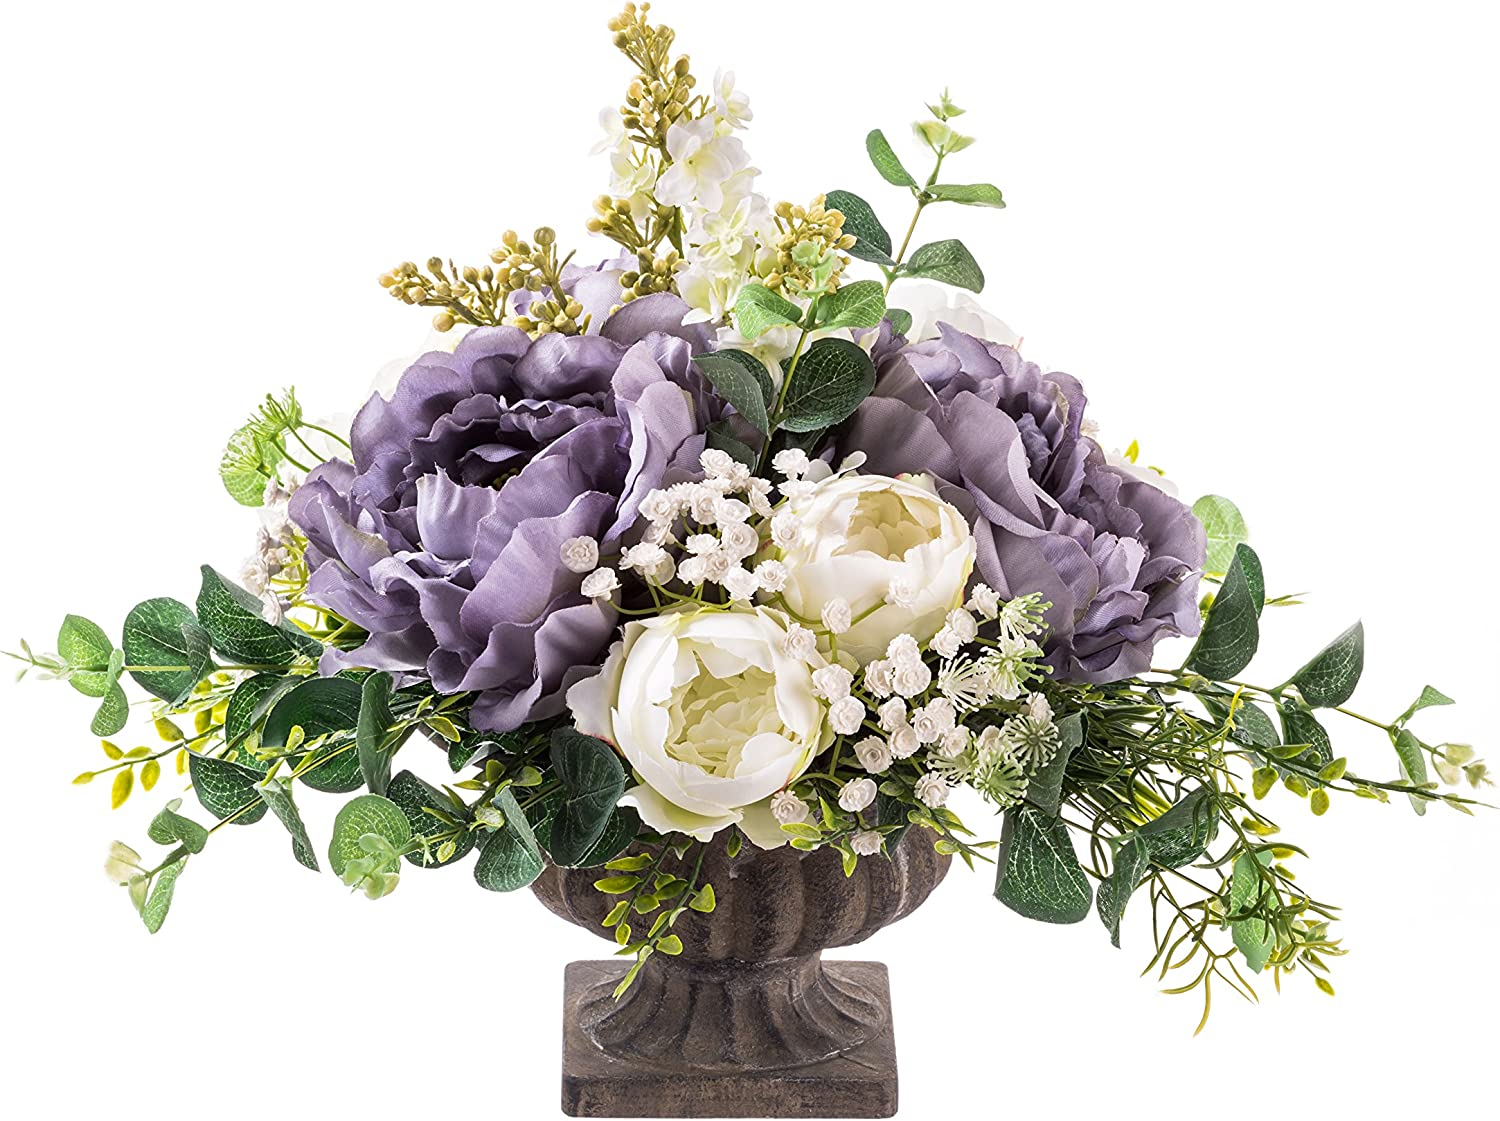 Artificial Flower Faux Flower Arrangement Peonies And Lilacs In An Ancient Vase Classics For Home Decor 30 Cm Amazon Co Uk Kitchen Home